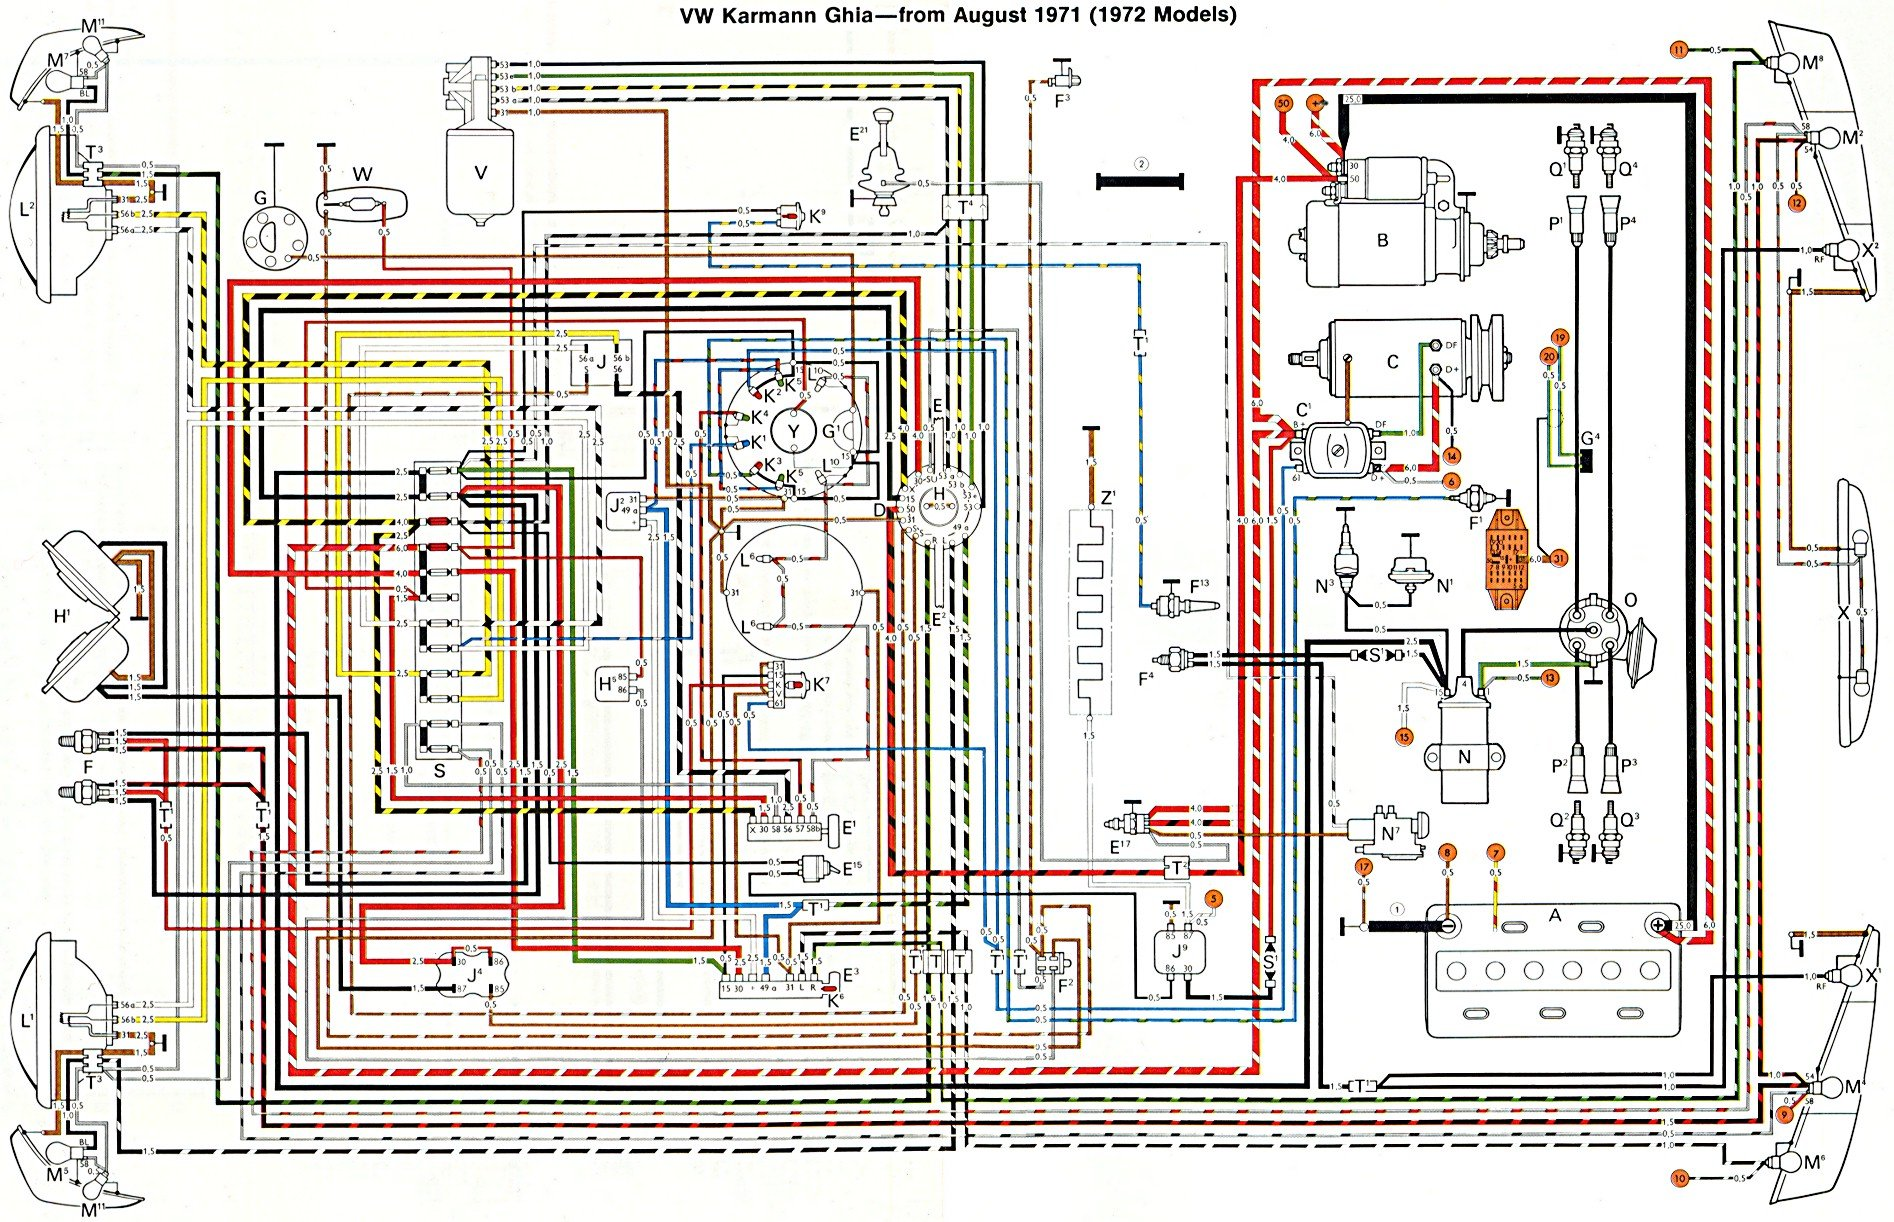 72ghia 1971 karmann ghia wiring diagram karmann ghia wiring harness Wiring Harness Diagram at crackthecode.co